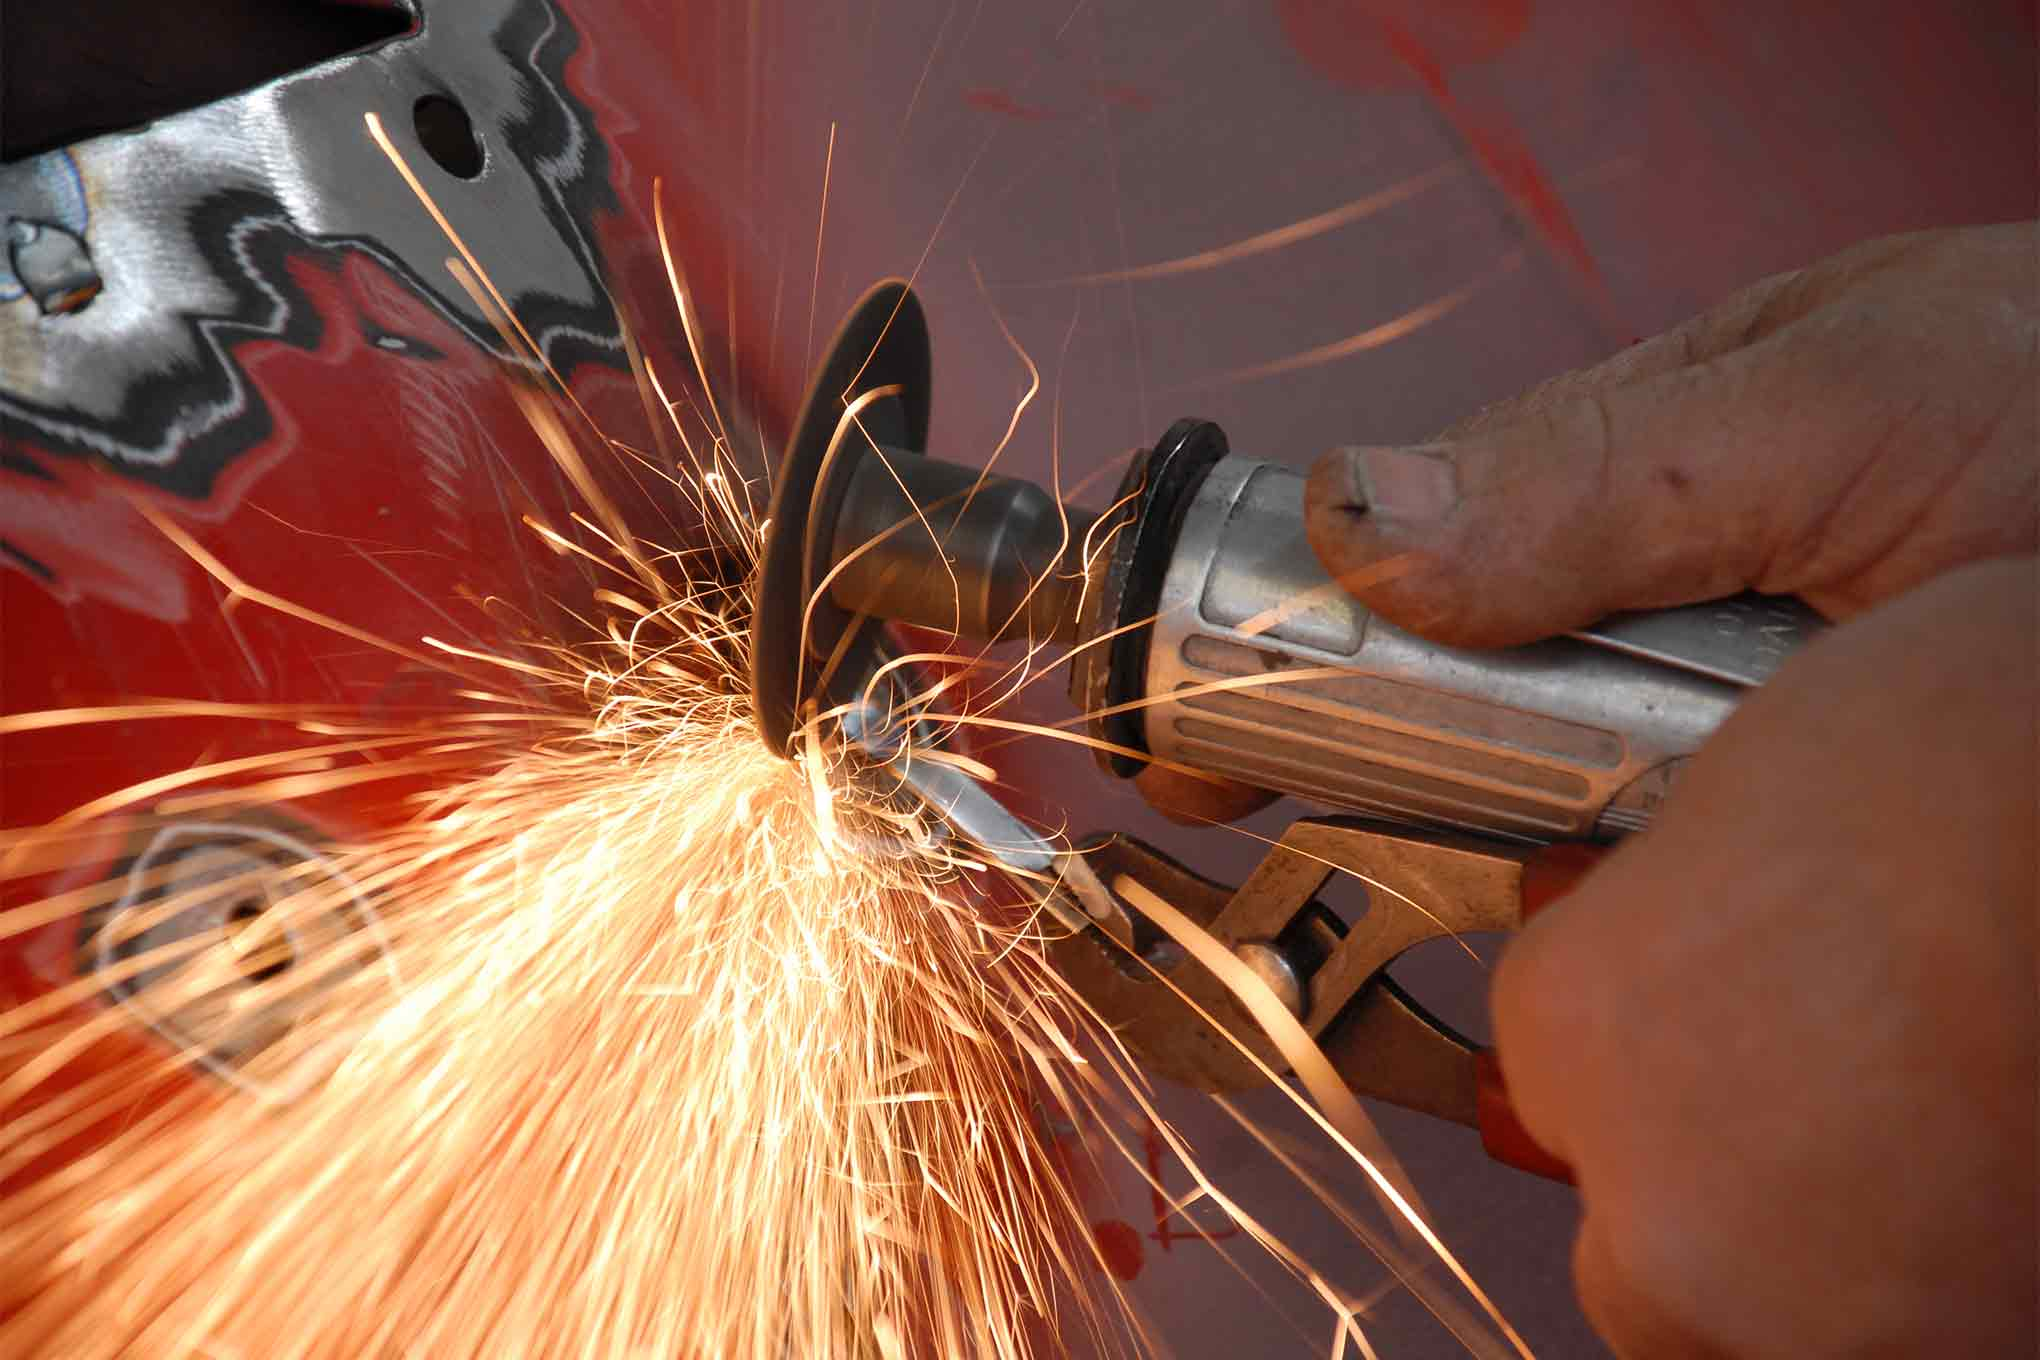 """After the tack weld he simply cuts off the """"handle"""" and has a nice small plug for the hole. No clamping was required."""